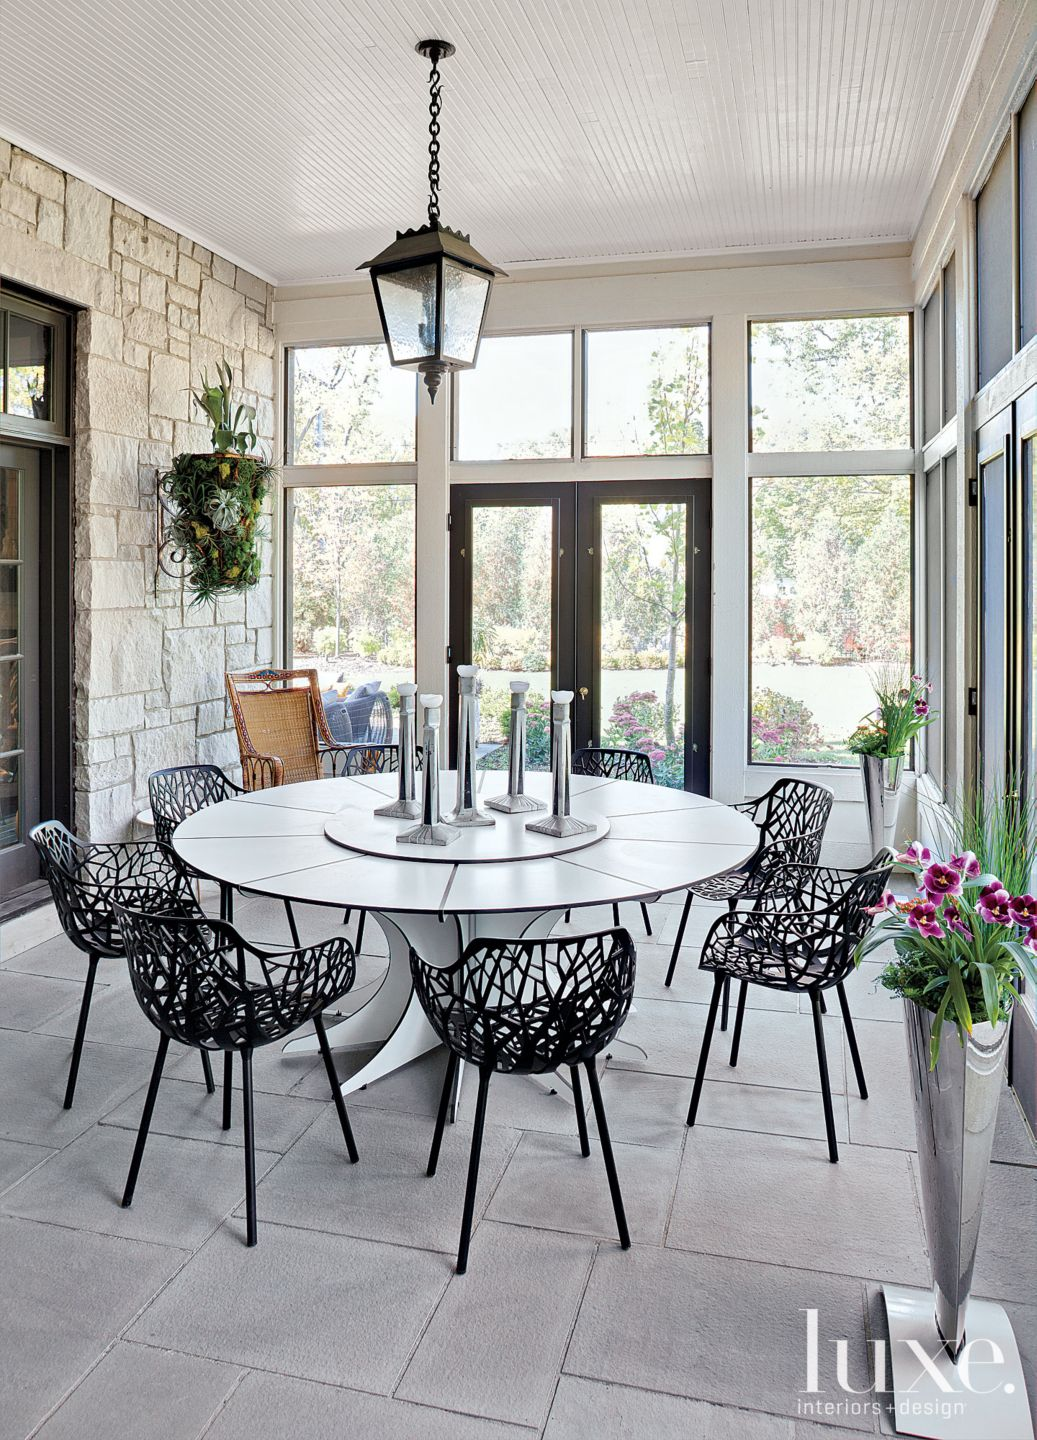 Contemporary Neutral Outdoor Dining Space with Stone Exterior